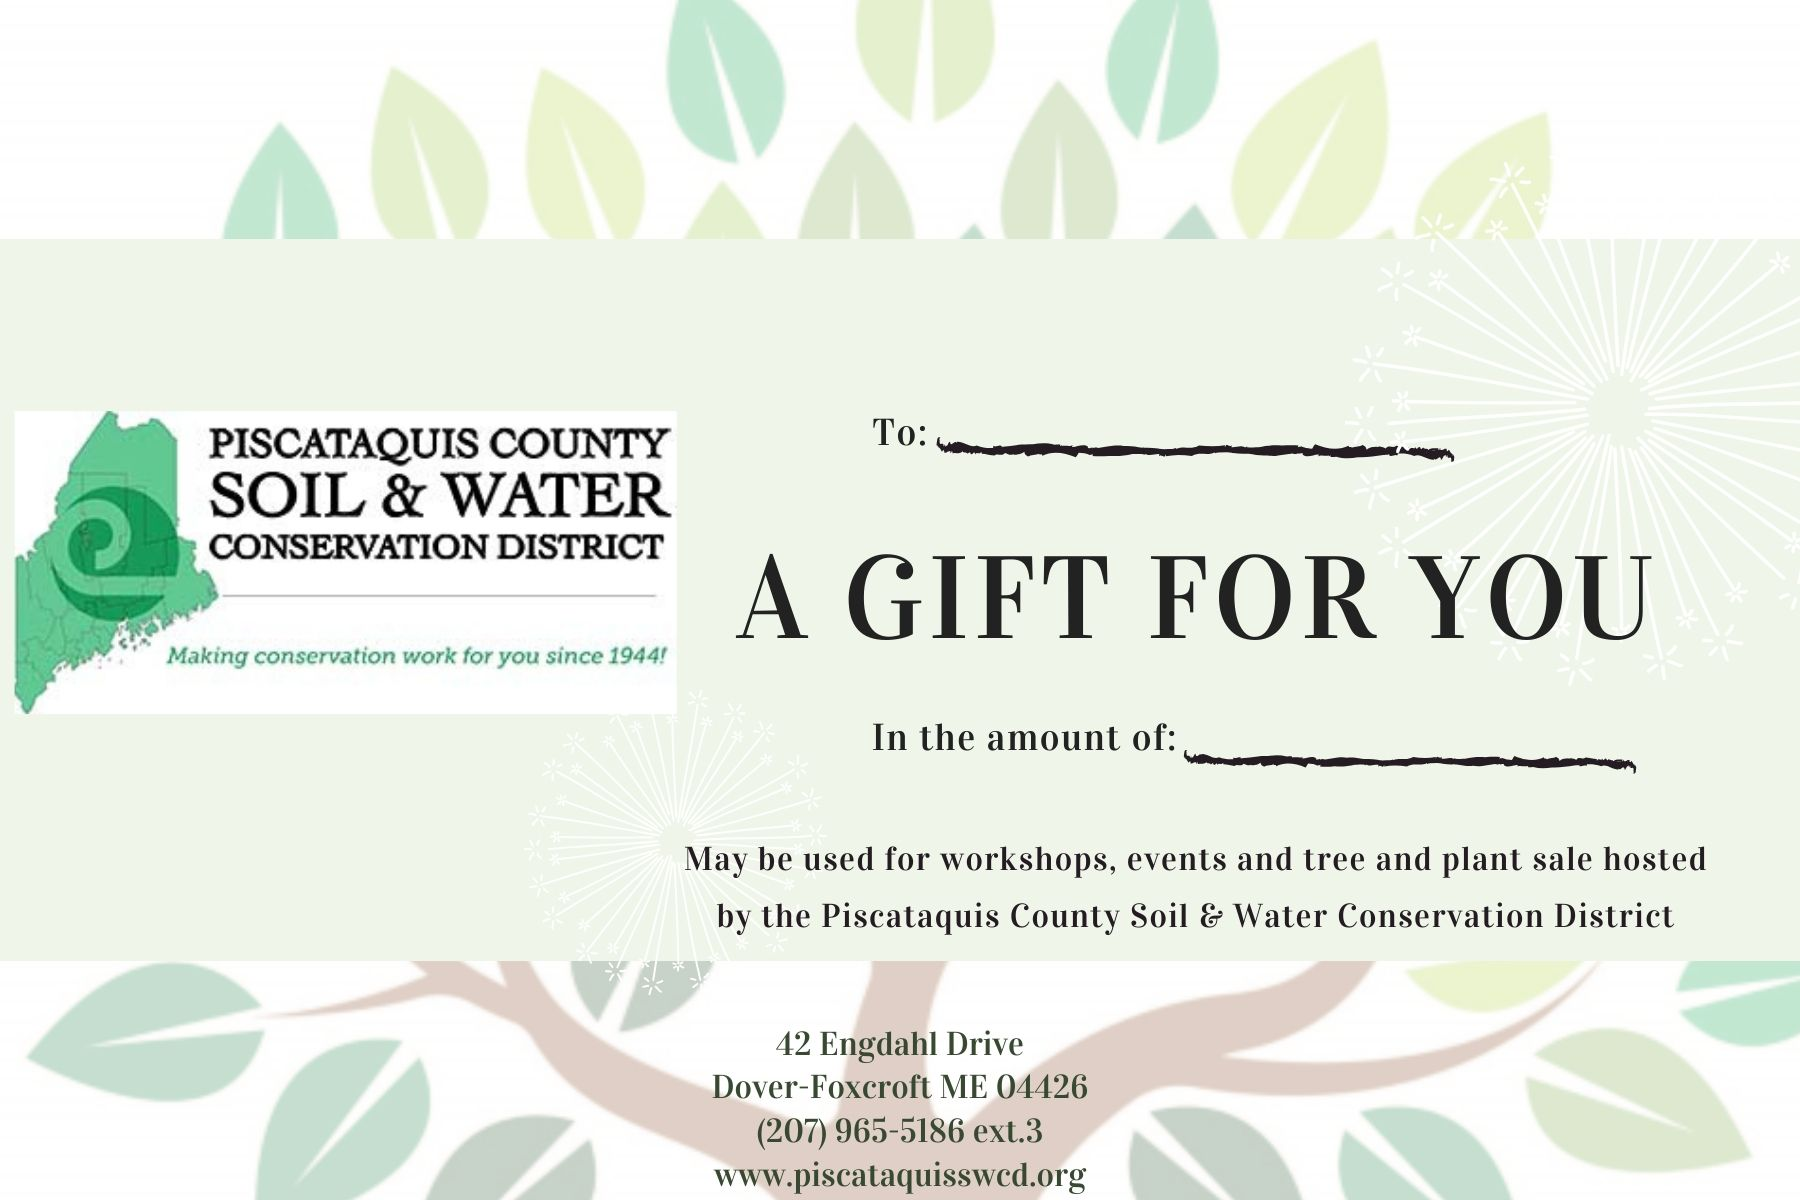 Pcswcd Gift Certificates